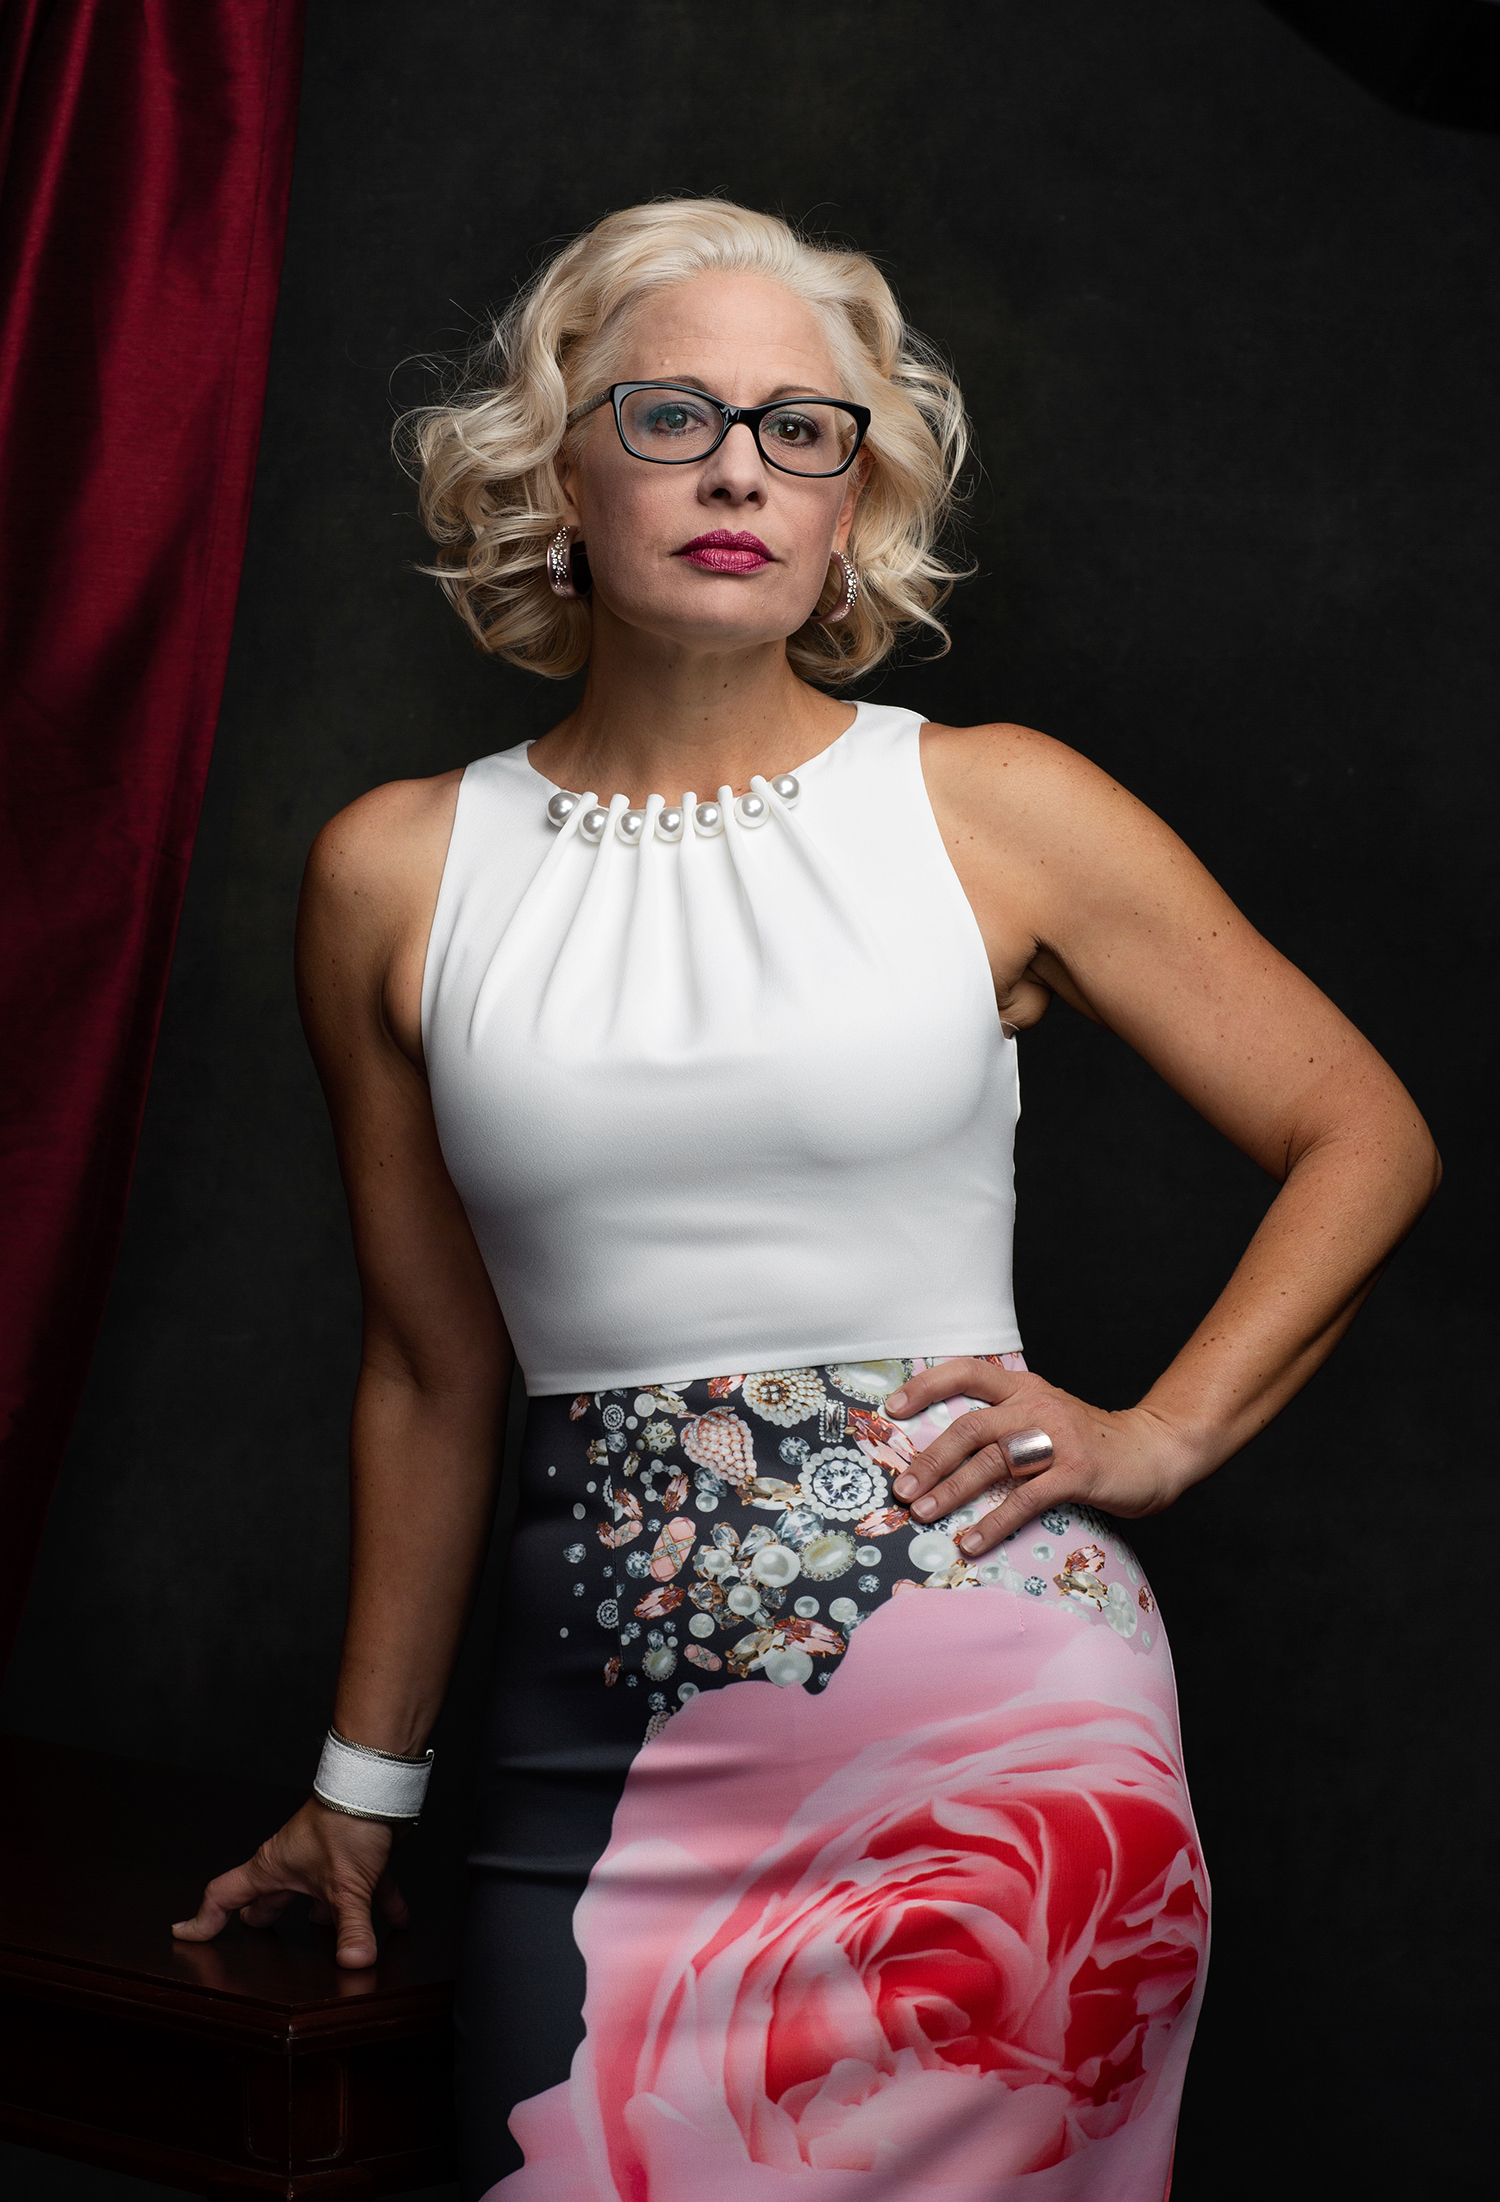 Kyrsten Sinema *****HOLD FOR WOMEN IN CONGRESS PROJECT****Kyrsten Lea Sinema is an American politician serving as the senior United States Senator from Arizona since 2019. A member of the Democratic Party, she served as the U.S. Representative from Arizona's 9th congressional district from 2013 to 2019. Sinema won the Arizona Senate election in 2018 to replace retiring Senator Jeff Flake, defeating Republican nominee Martha McSally. Sinema's victory made her the first woman elected to the United States Senate from Arizona, the first openly bisexual person elected to the United States Senate, the second openly LGBT person elected to the United States Senate (after Senator Tammy Baldwin of Wisconsin), and the first Democrat elected to the United States Senate from Arizona since Dennis DeConcini in 1988.